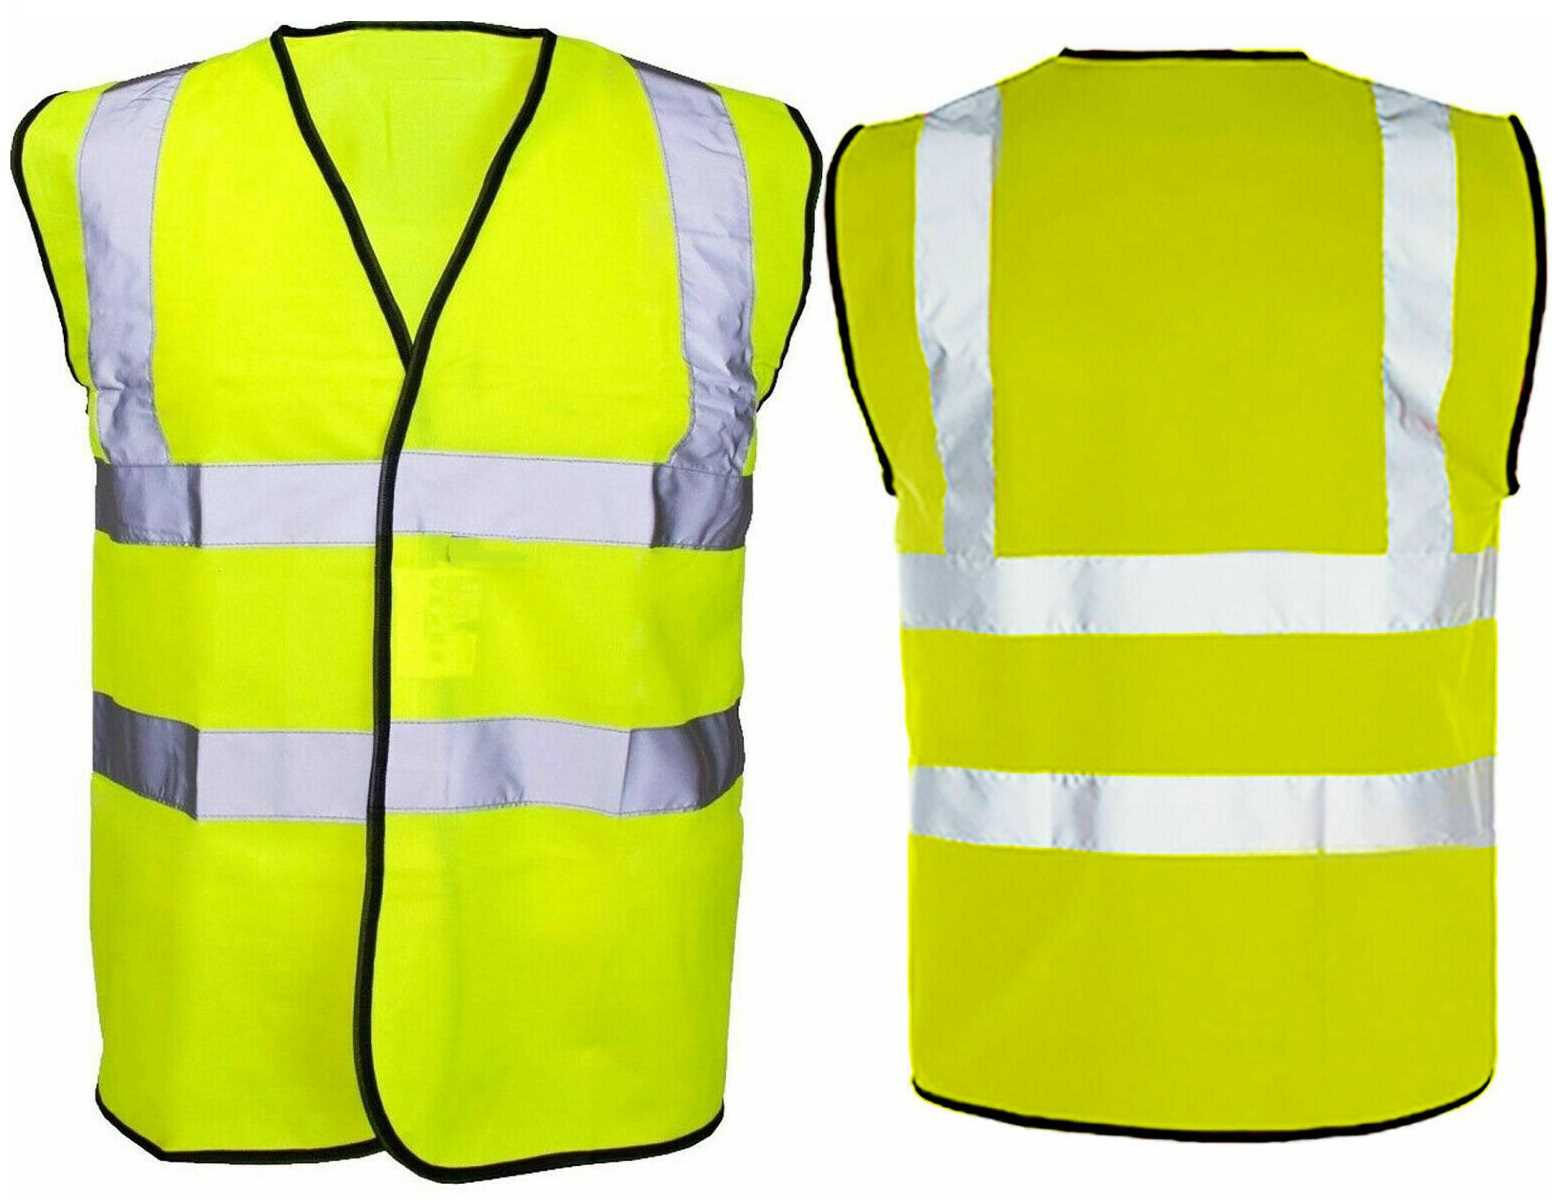 Yellow Small Hi Vis Safety Vest Waistcoat High Visibility Safety Work Wear Reflective Without Pockets